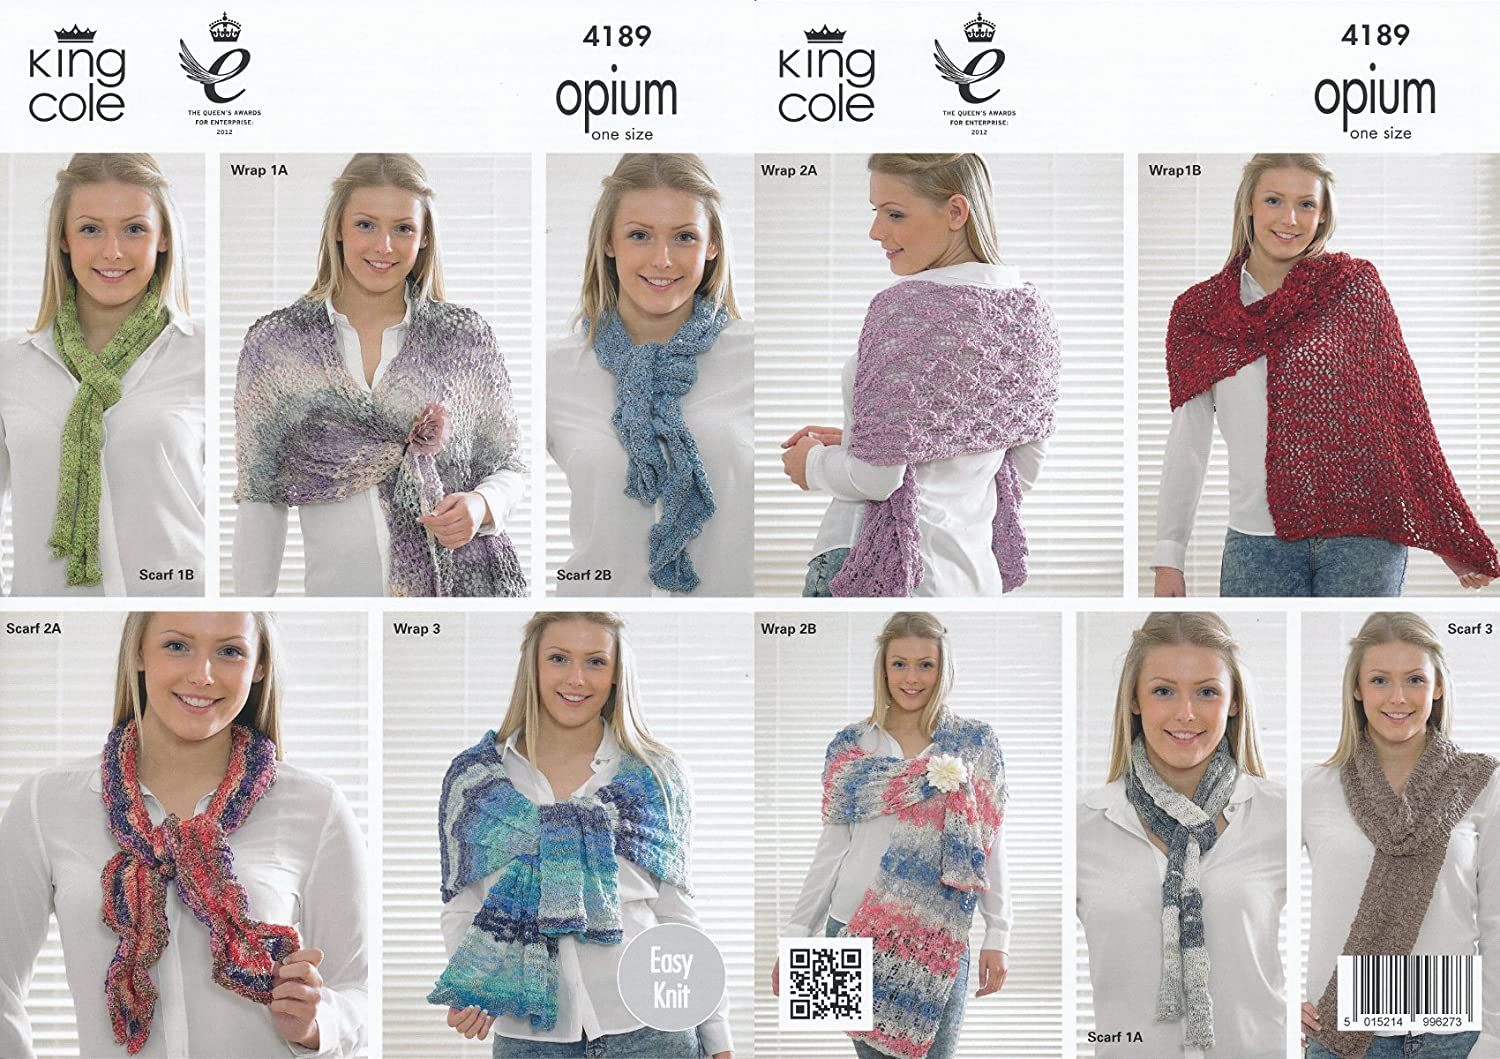 Amazon.com: King Cole Opium & Cosmos Knitting Pattern for Ladies ...